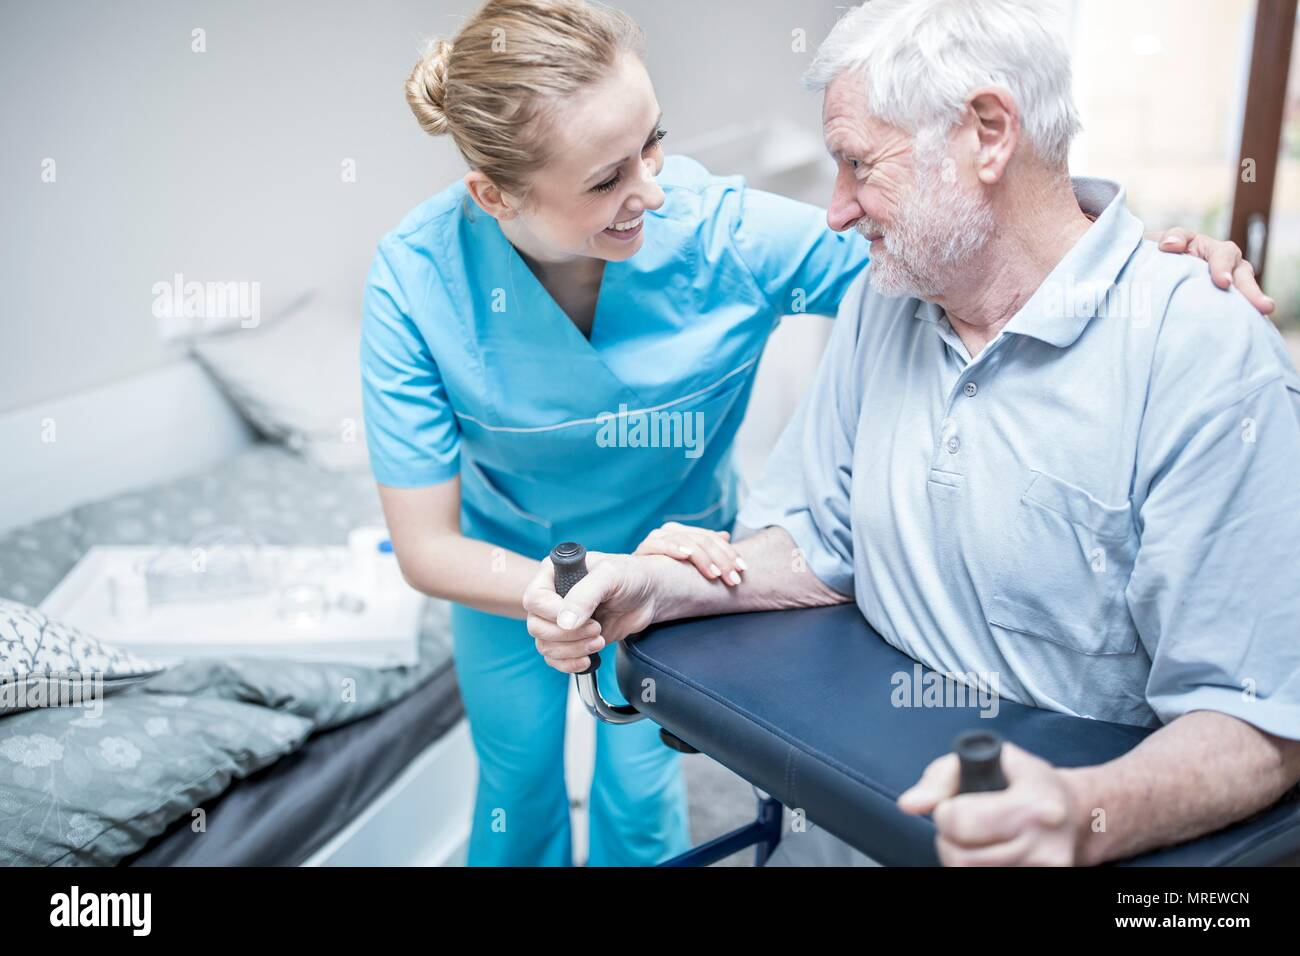 Senior man using rollator with care worker assisting. - Stock Image